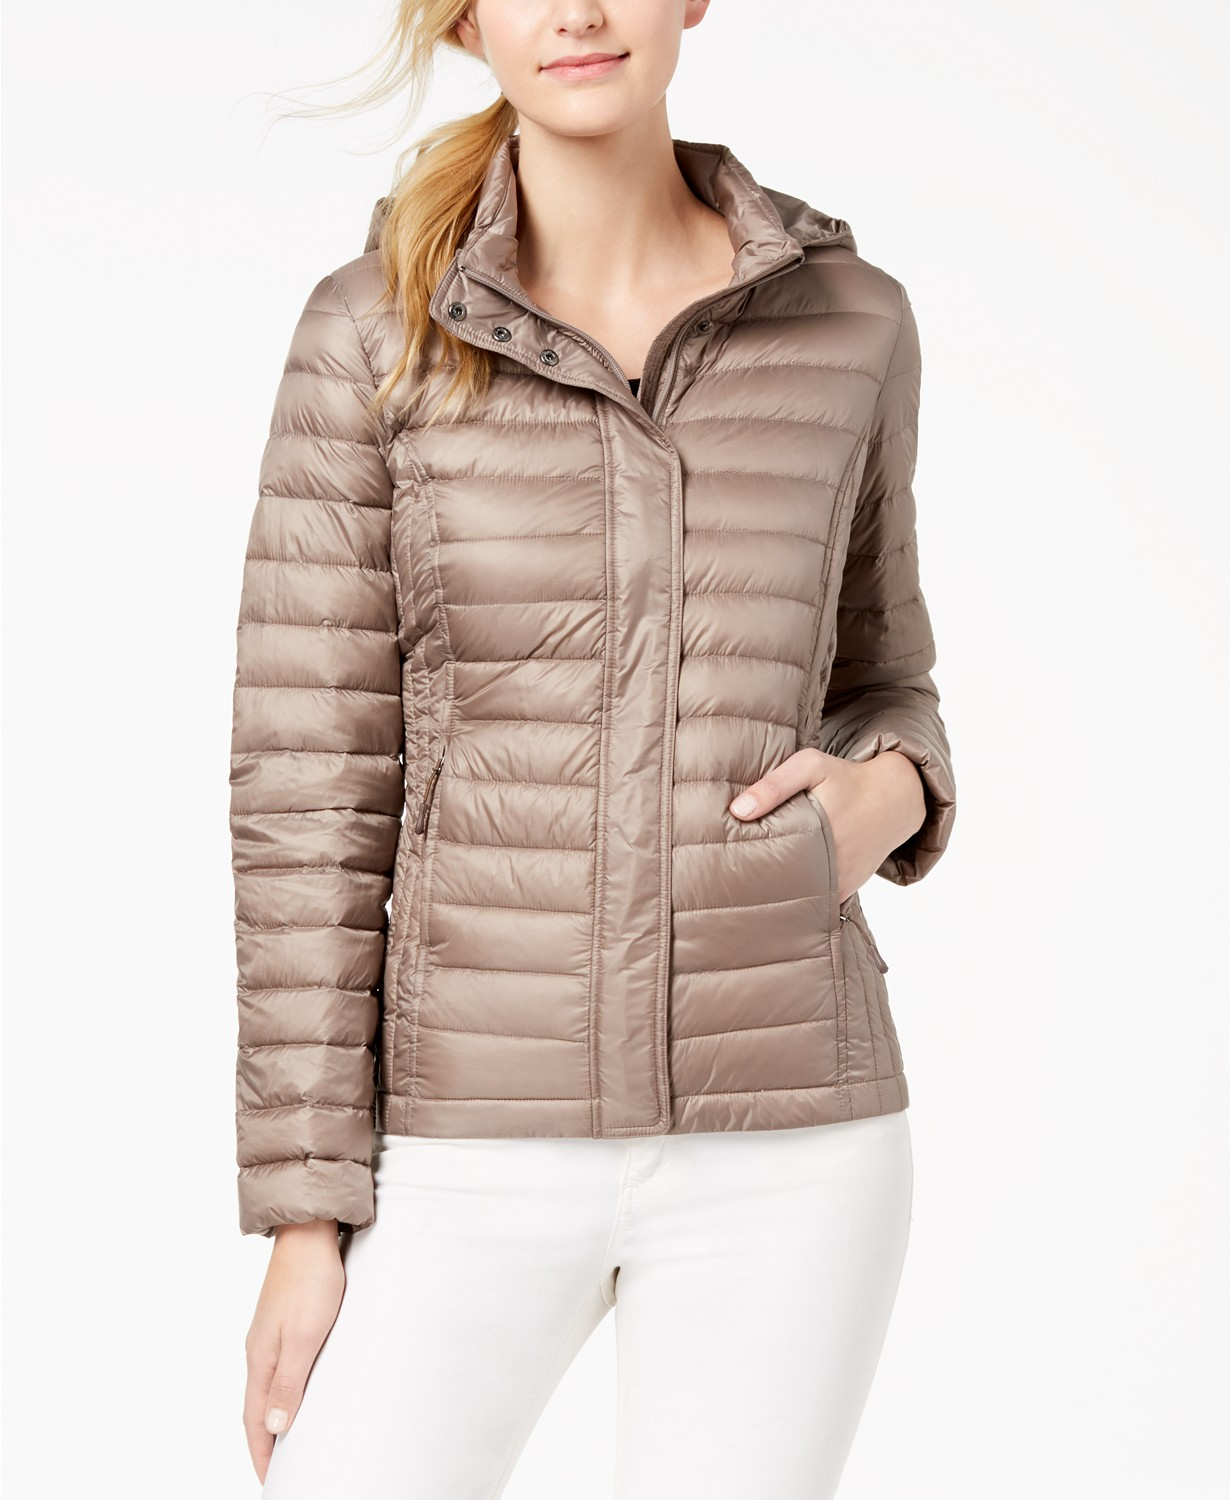 Macys coat Sale 70% OFF. Shop by macys.